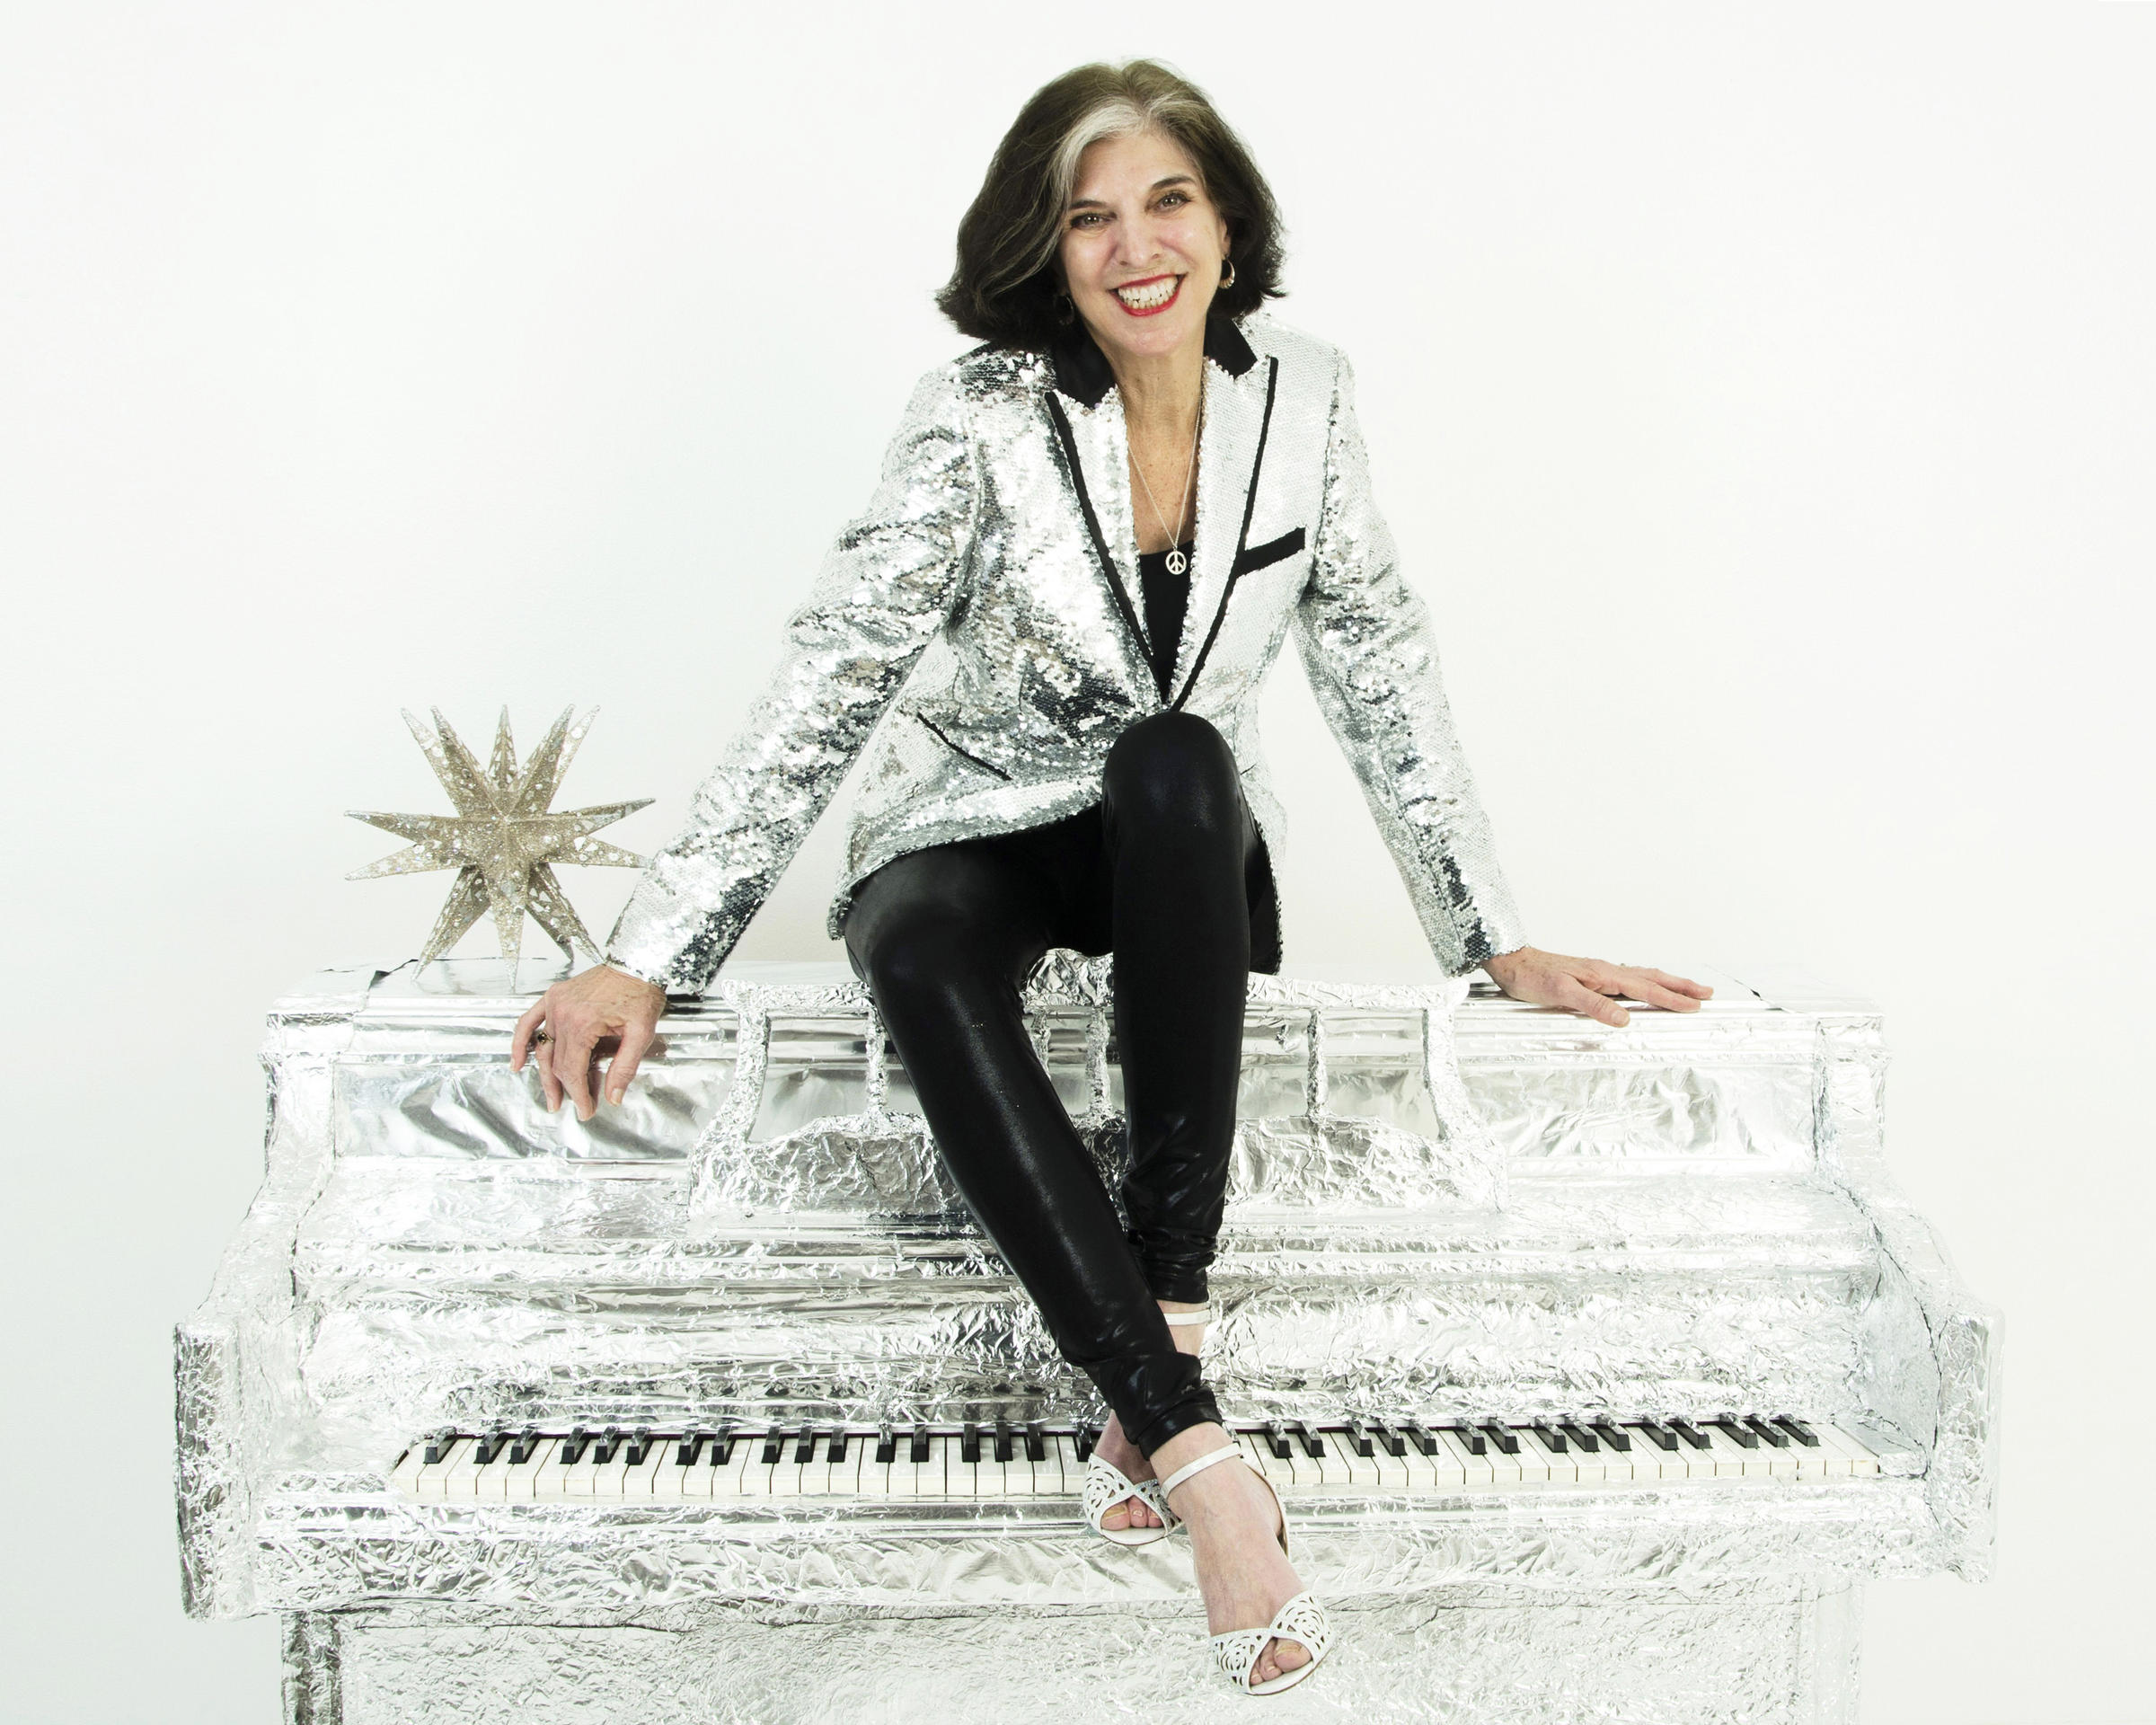 a3b75359b9b Tune into WMSE to listen to DJ Jerry Glocka chat with Marcia Ball ahead of  her show with Sonny Landreth at the Northern Lights Theater on Tuesday